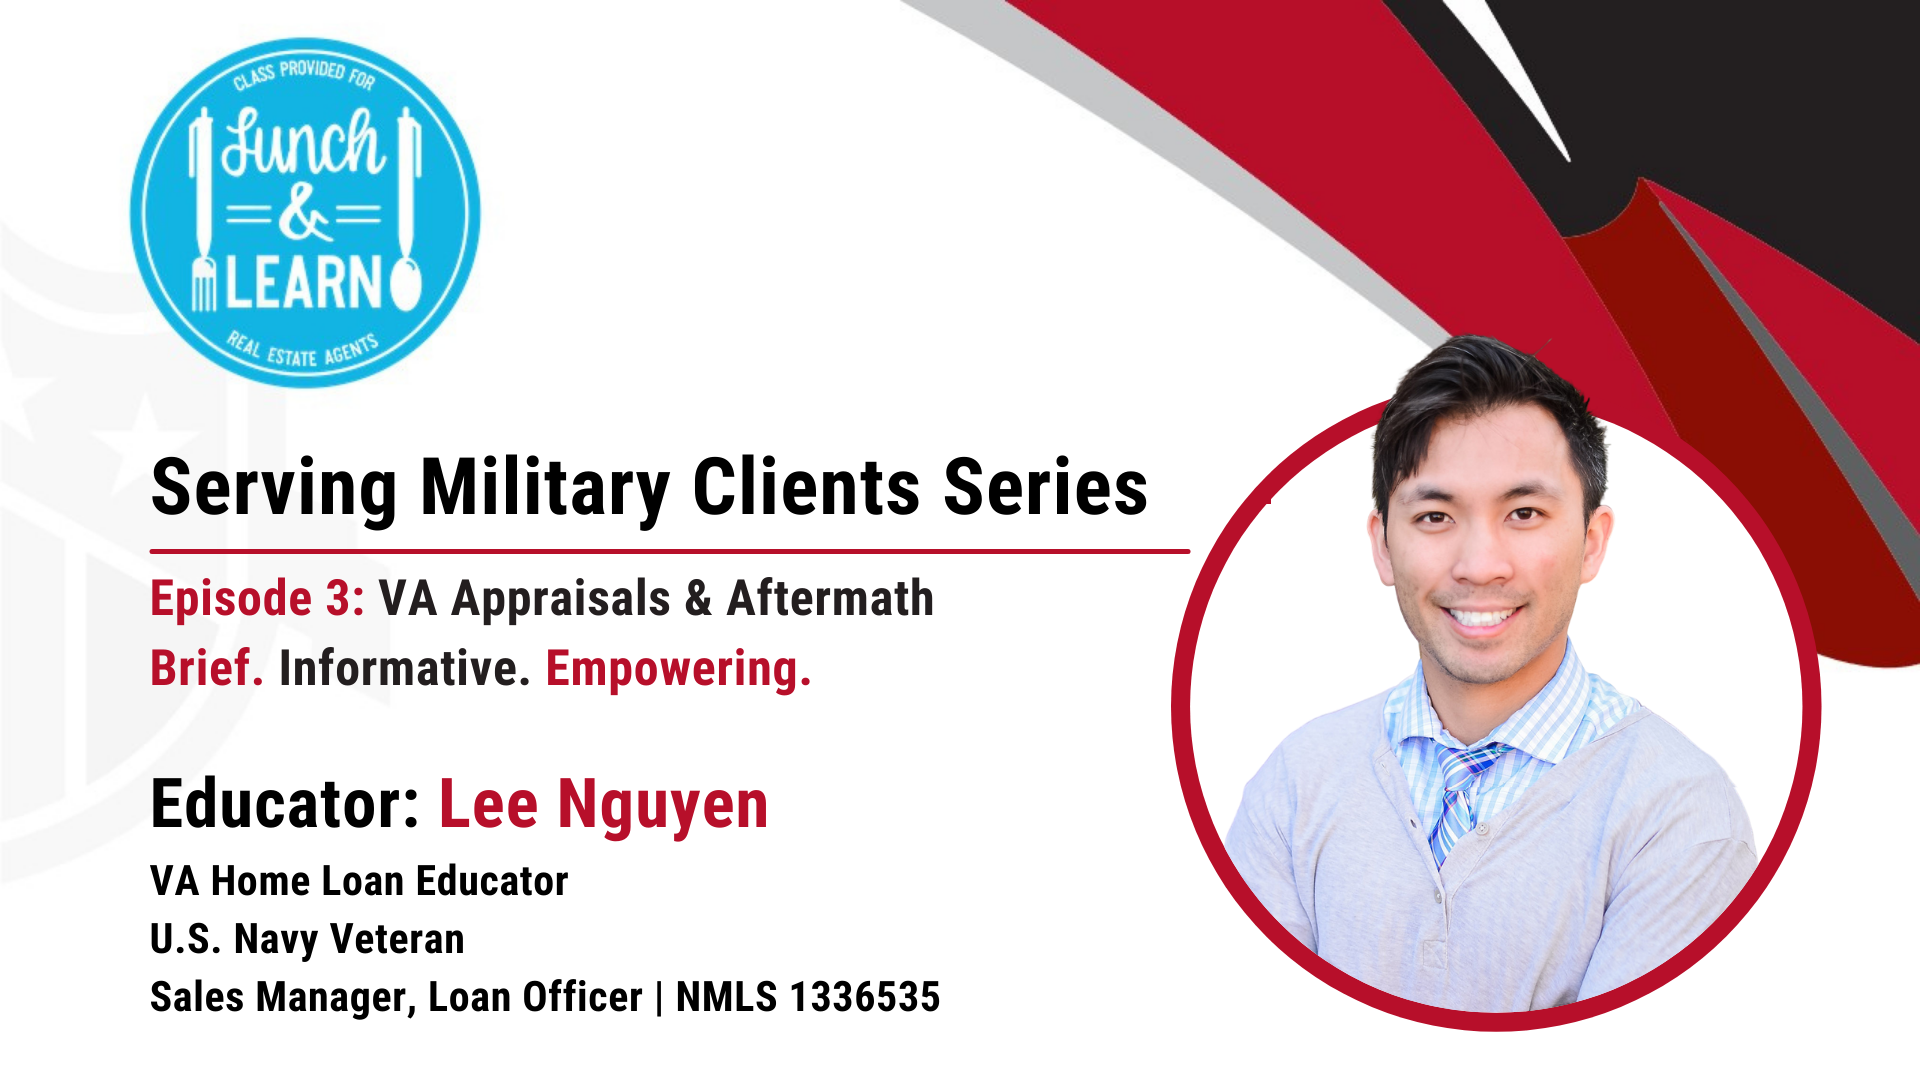 Episode 3: Serving Military Clients Series